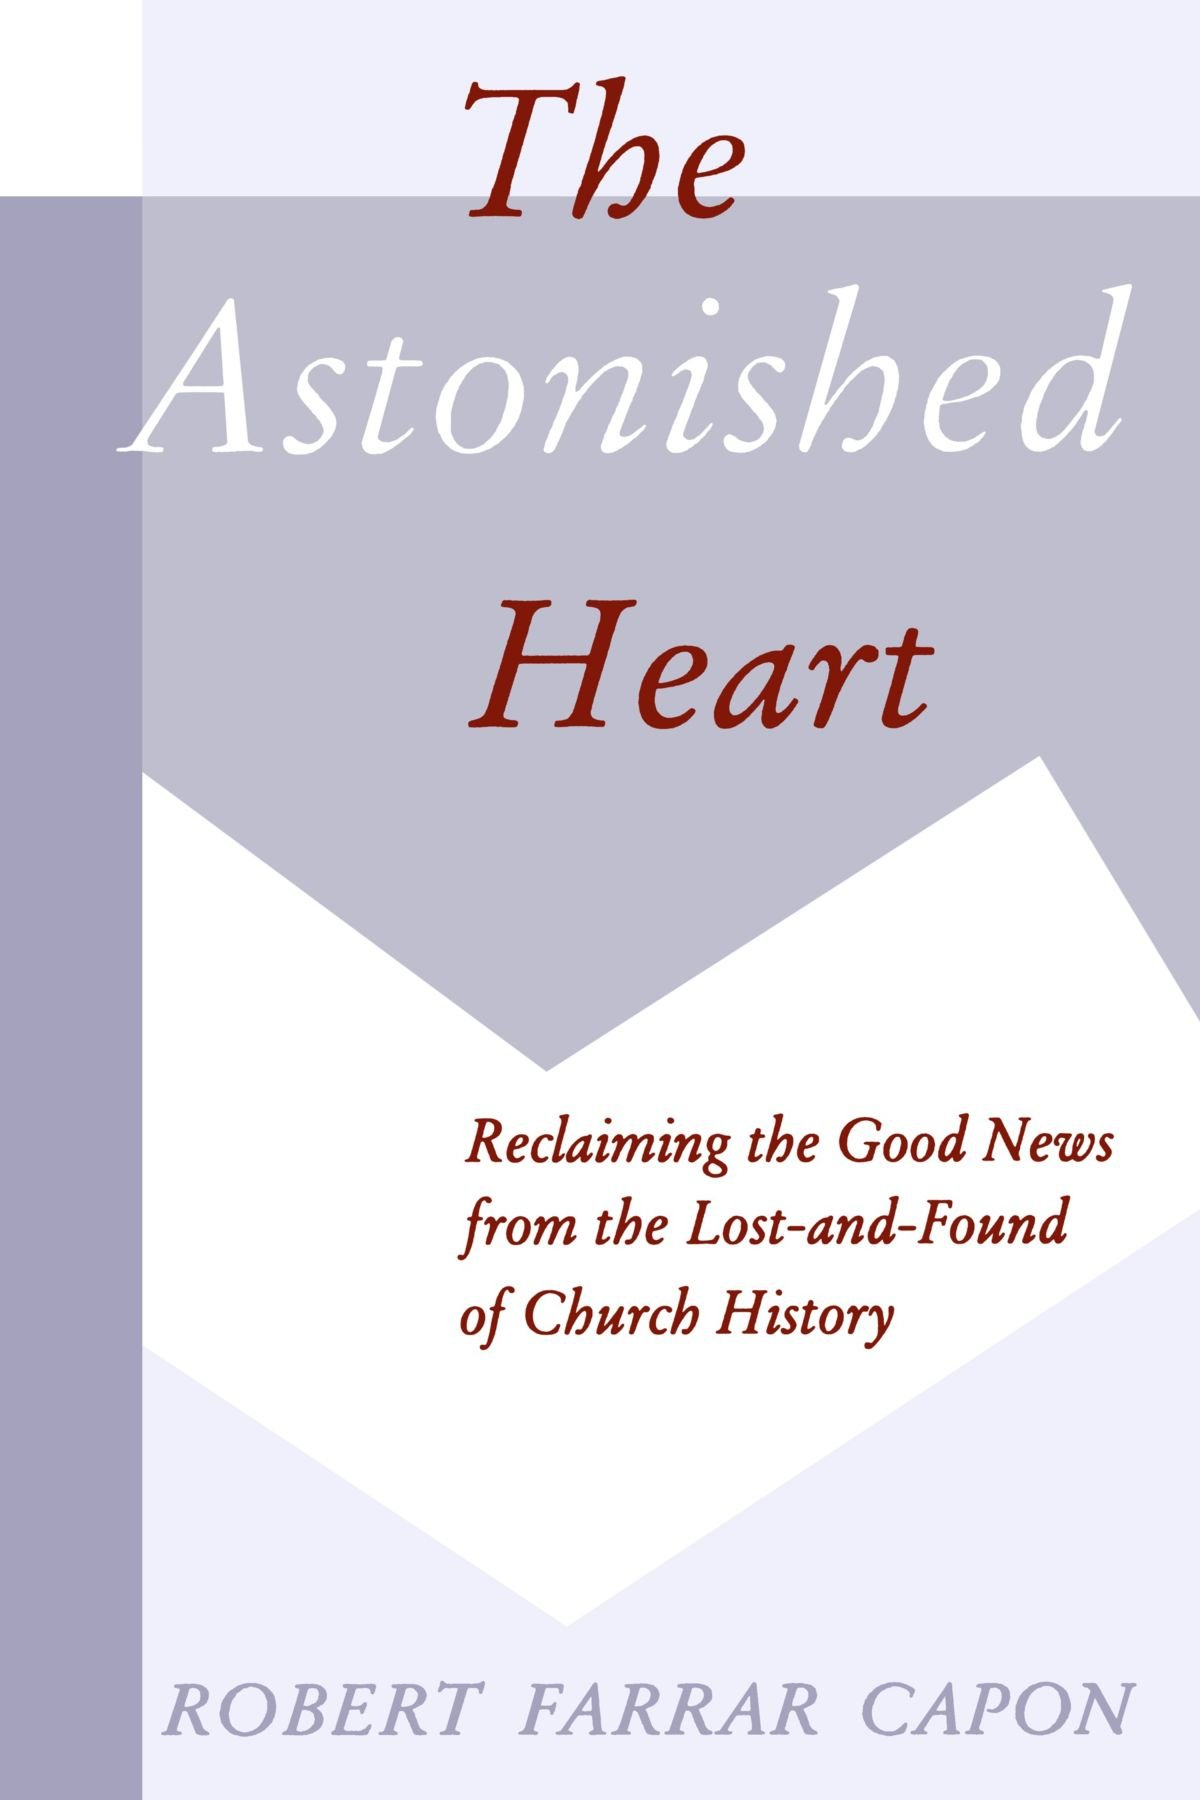 The Astonished Heart: Reclaiming the Good News from the Lost-and-Found of  Church History: Mr. Robert Farrar Capon: 9780802807915: Amazon.com: Books